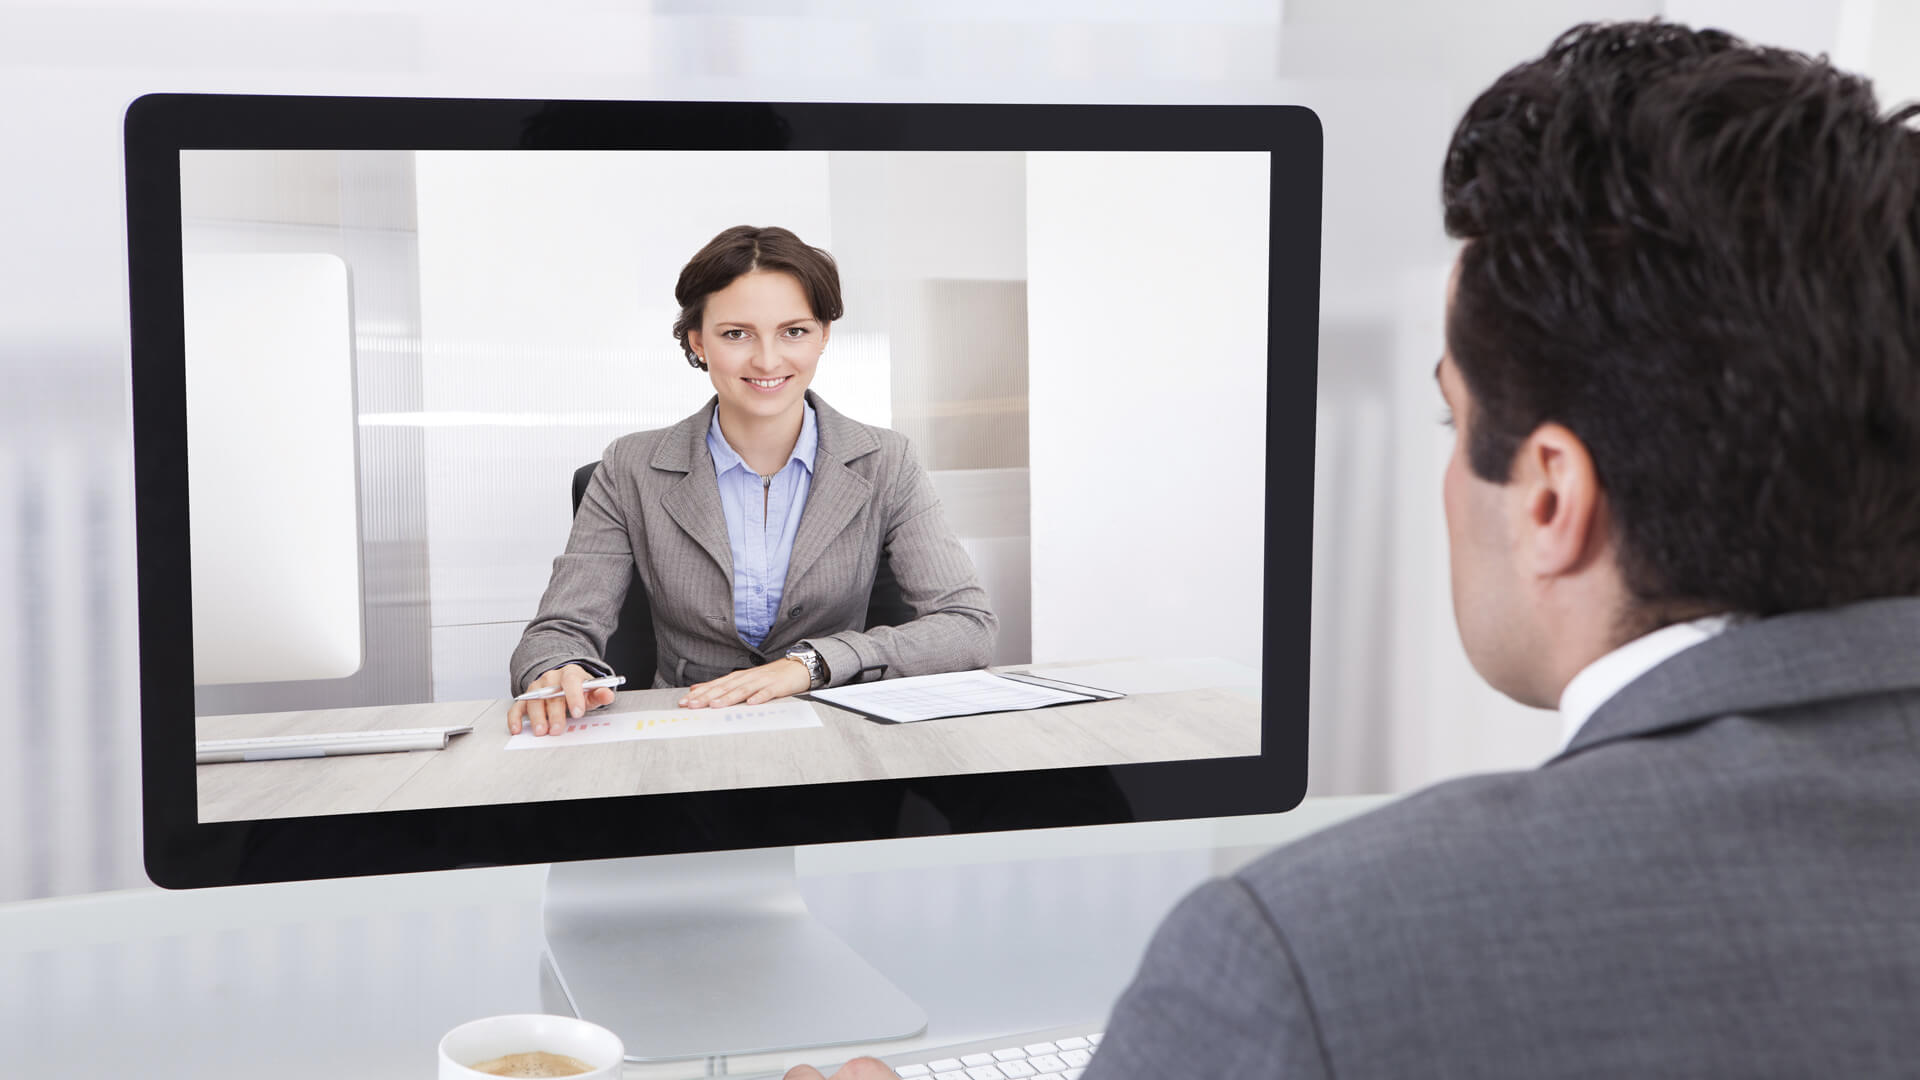 Telepsychiatry helping improve access to care